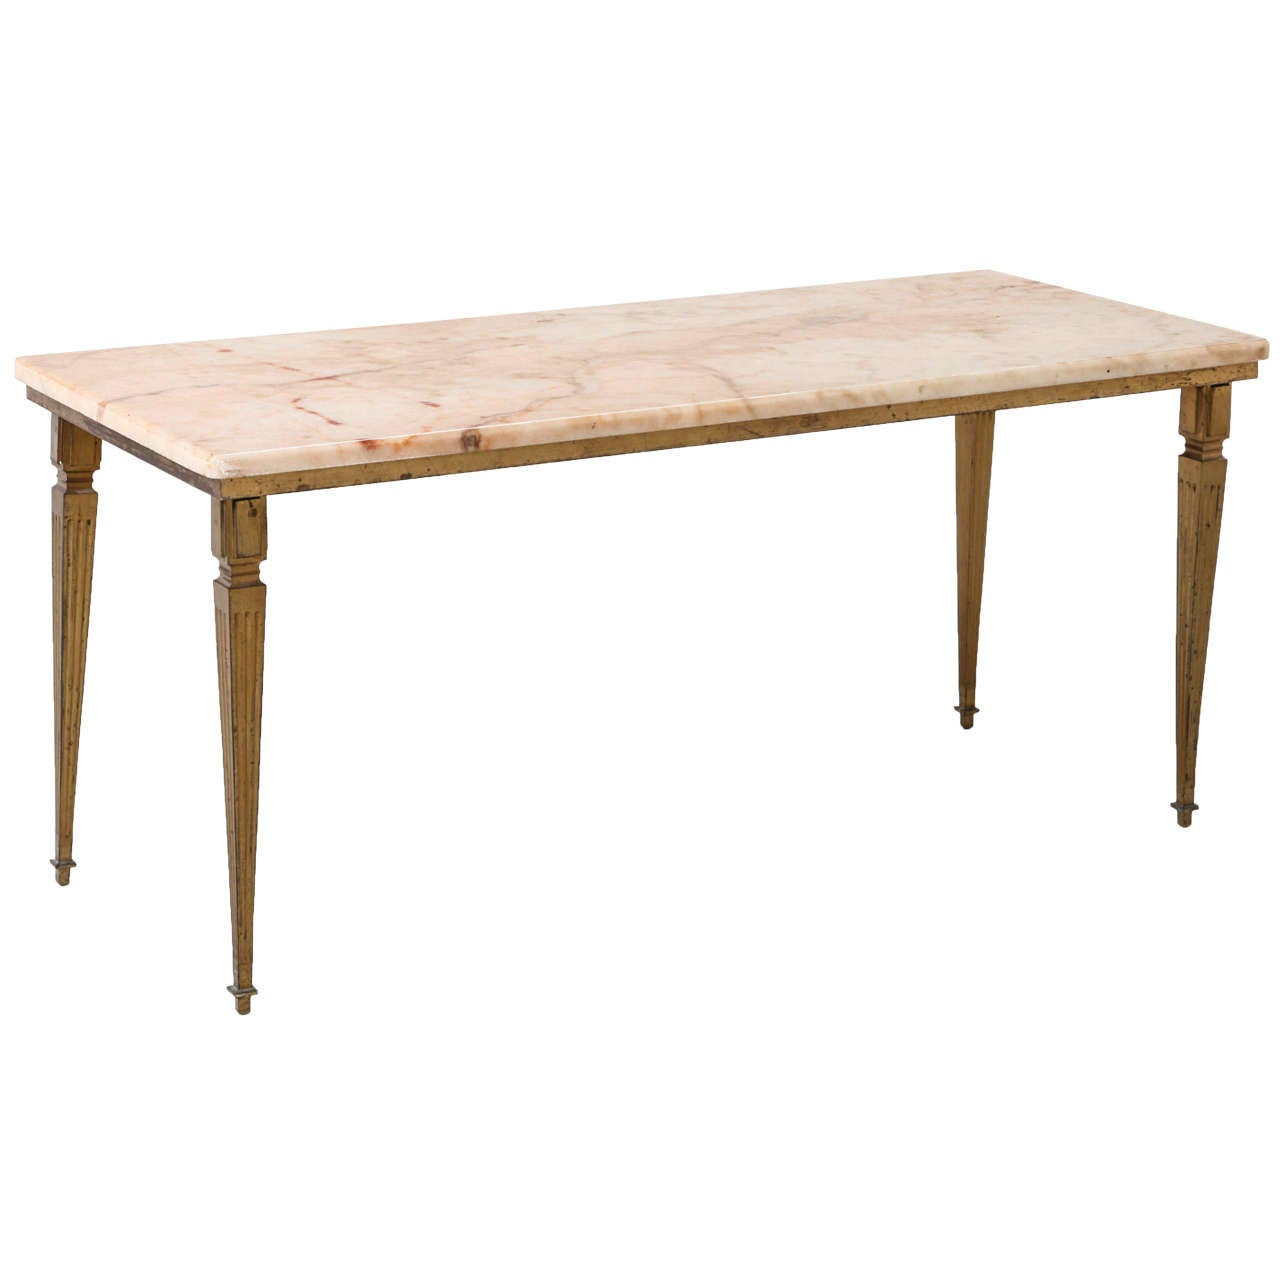 Maison Jansen Style Bronze And Marble Coffee Table At 1stdibs